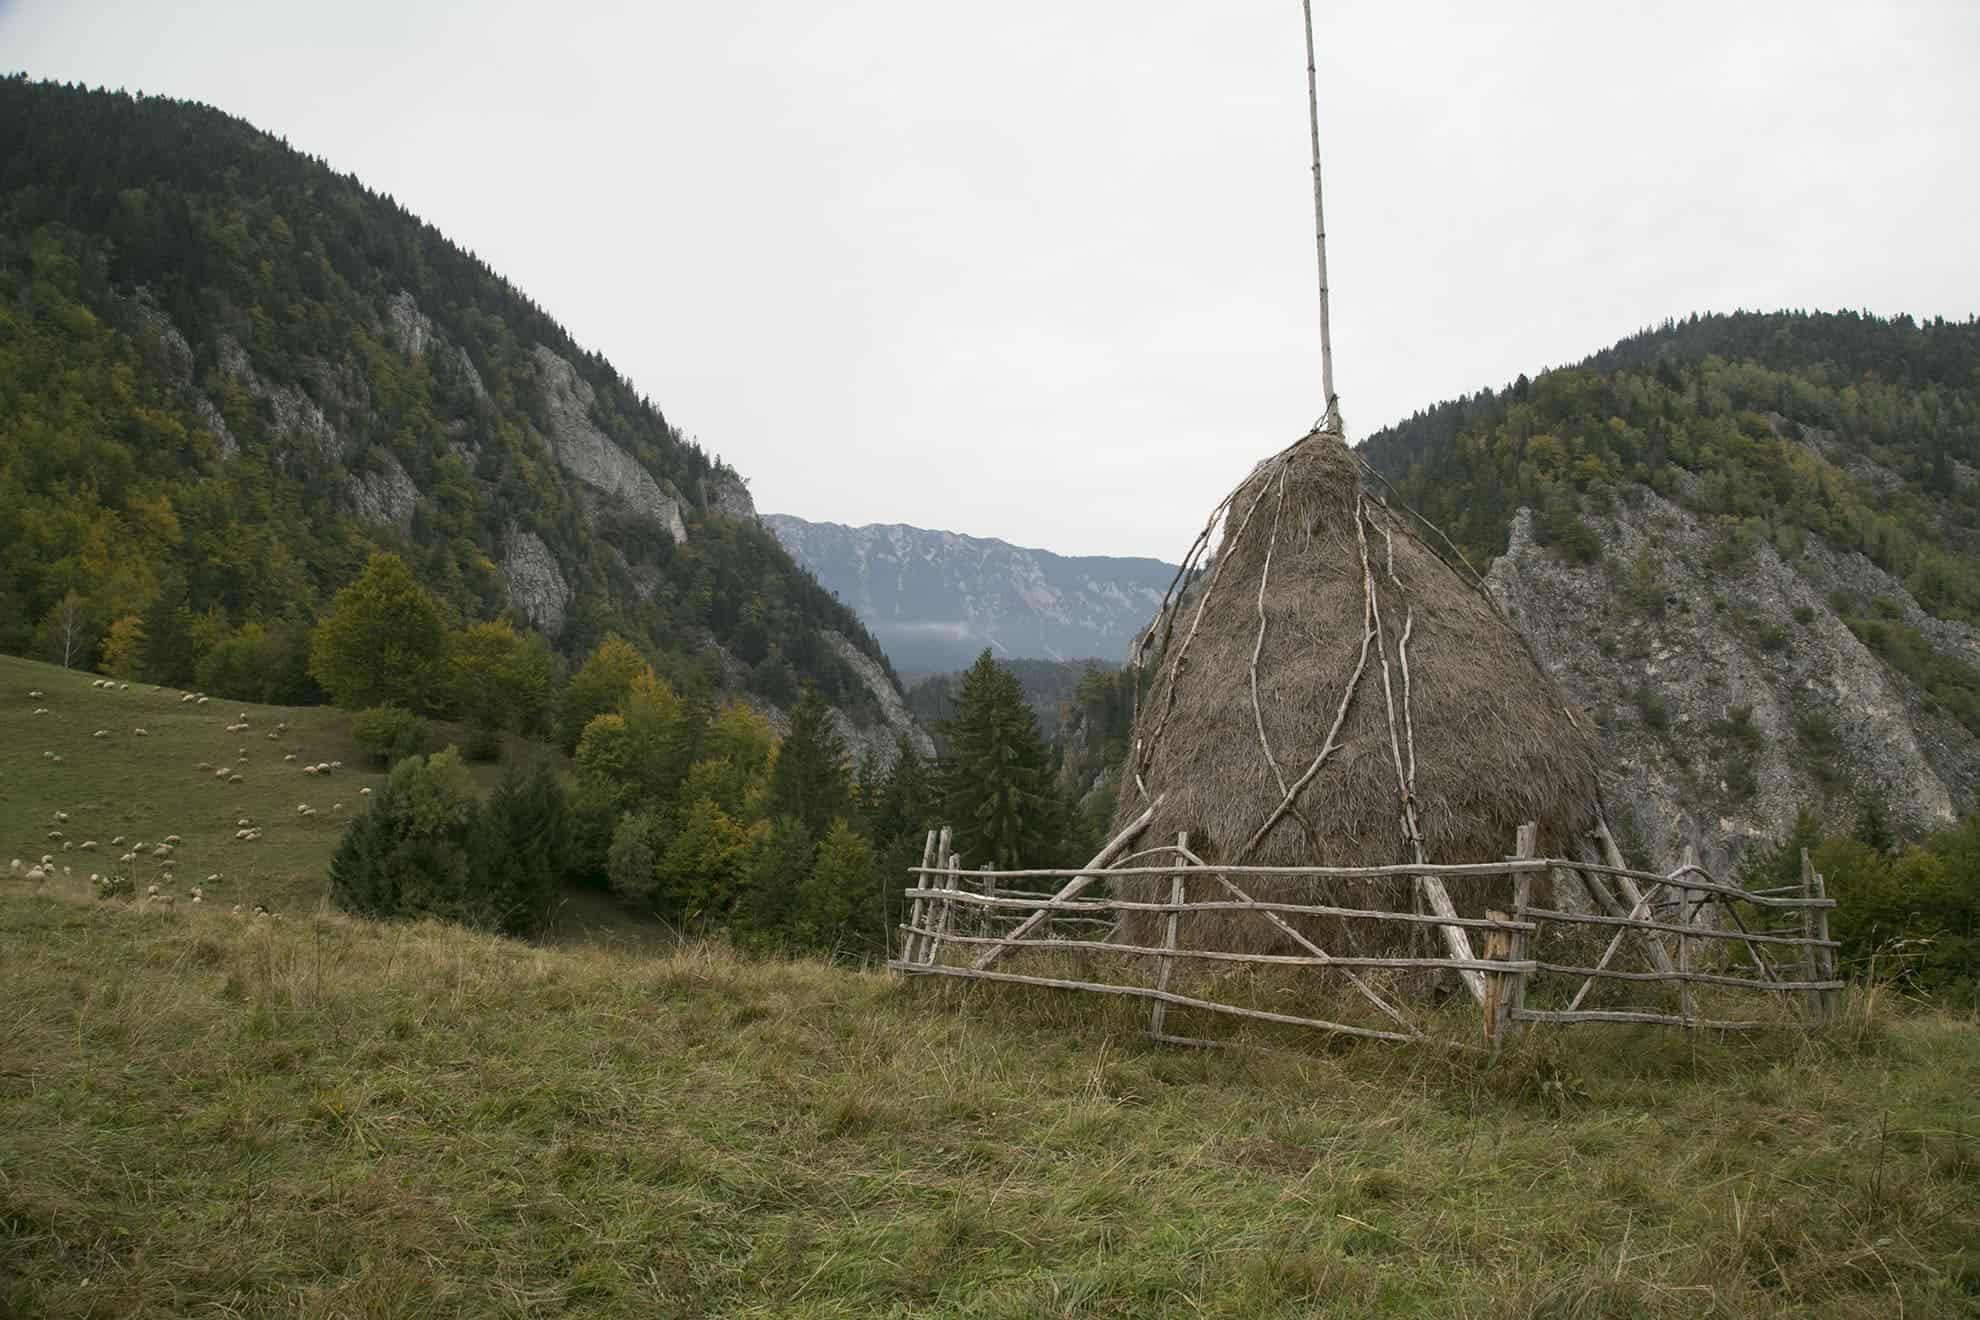 A haystack on the Carpathian mountainside. All photos by Tom Hansell.